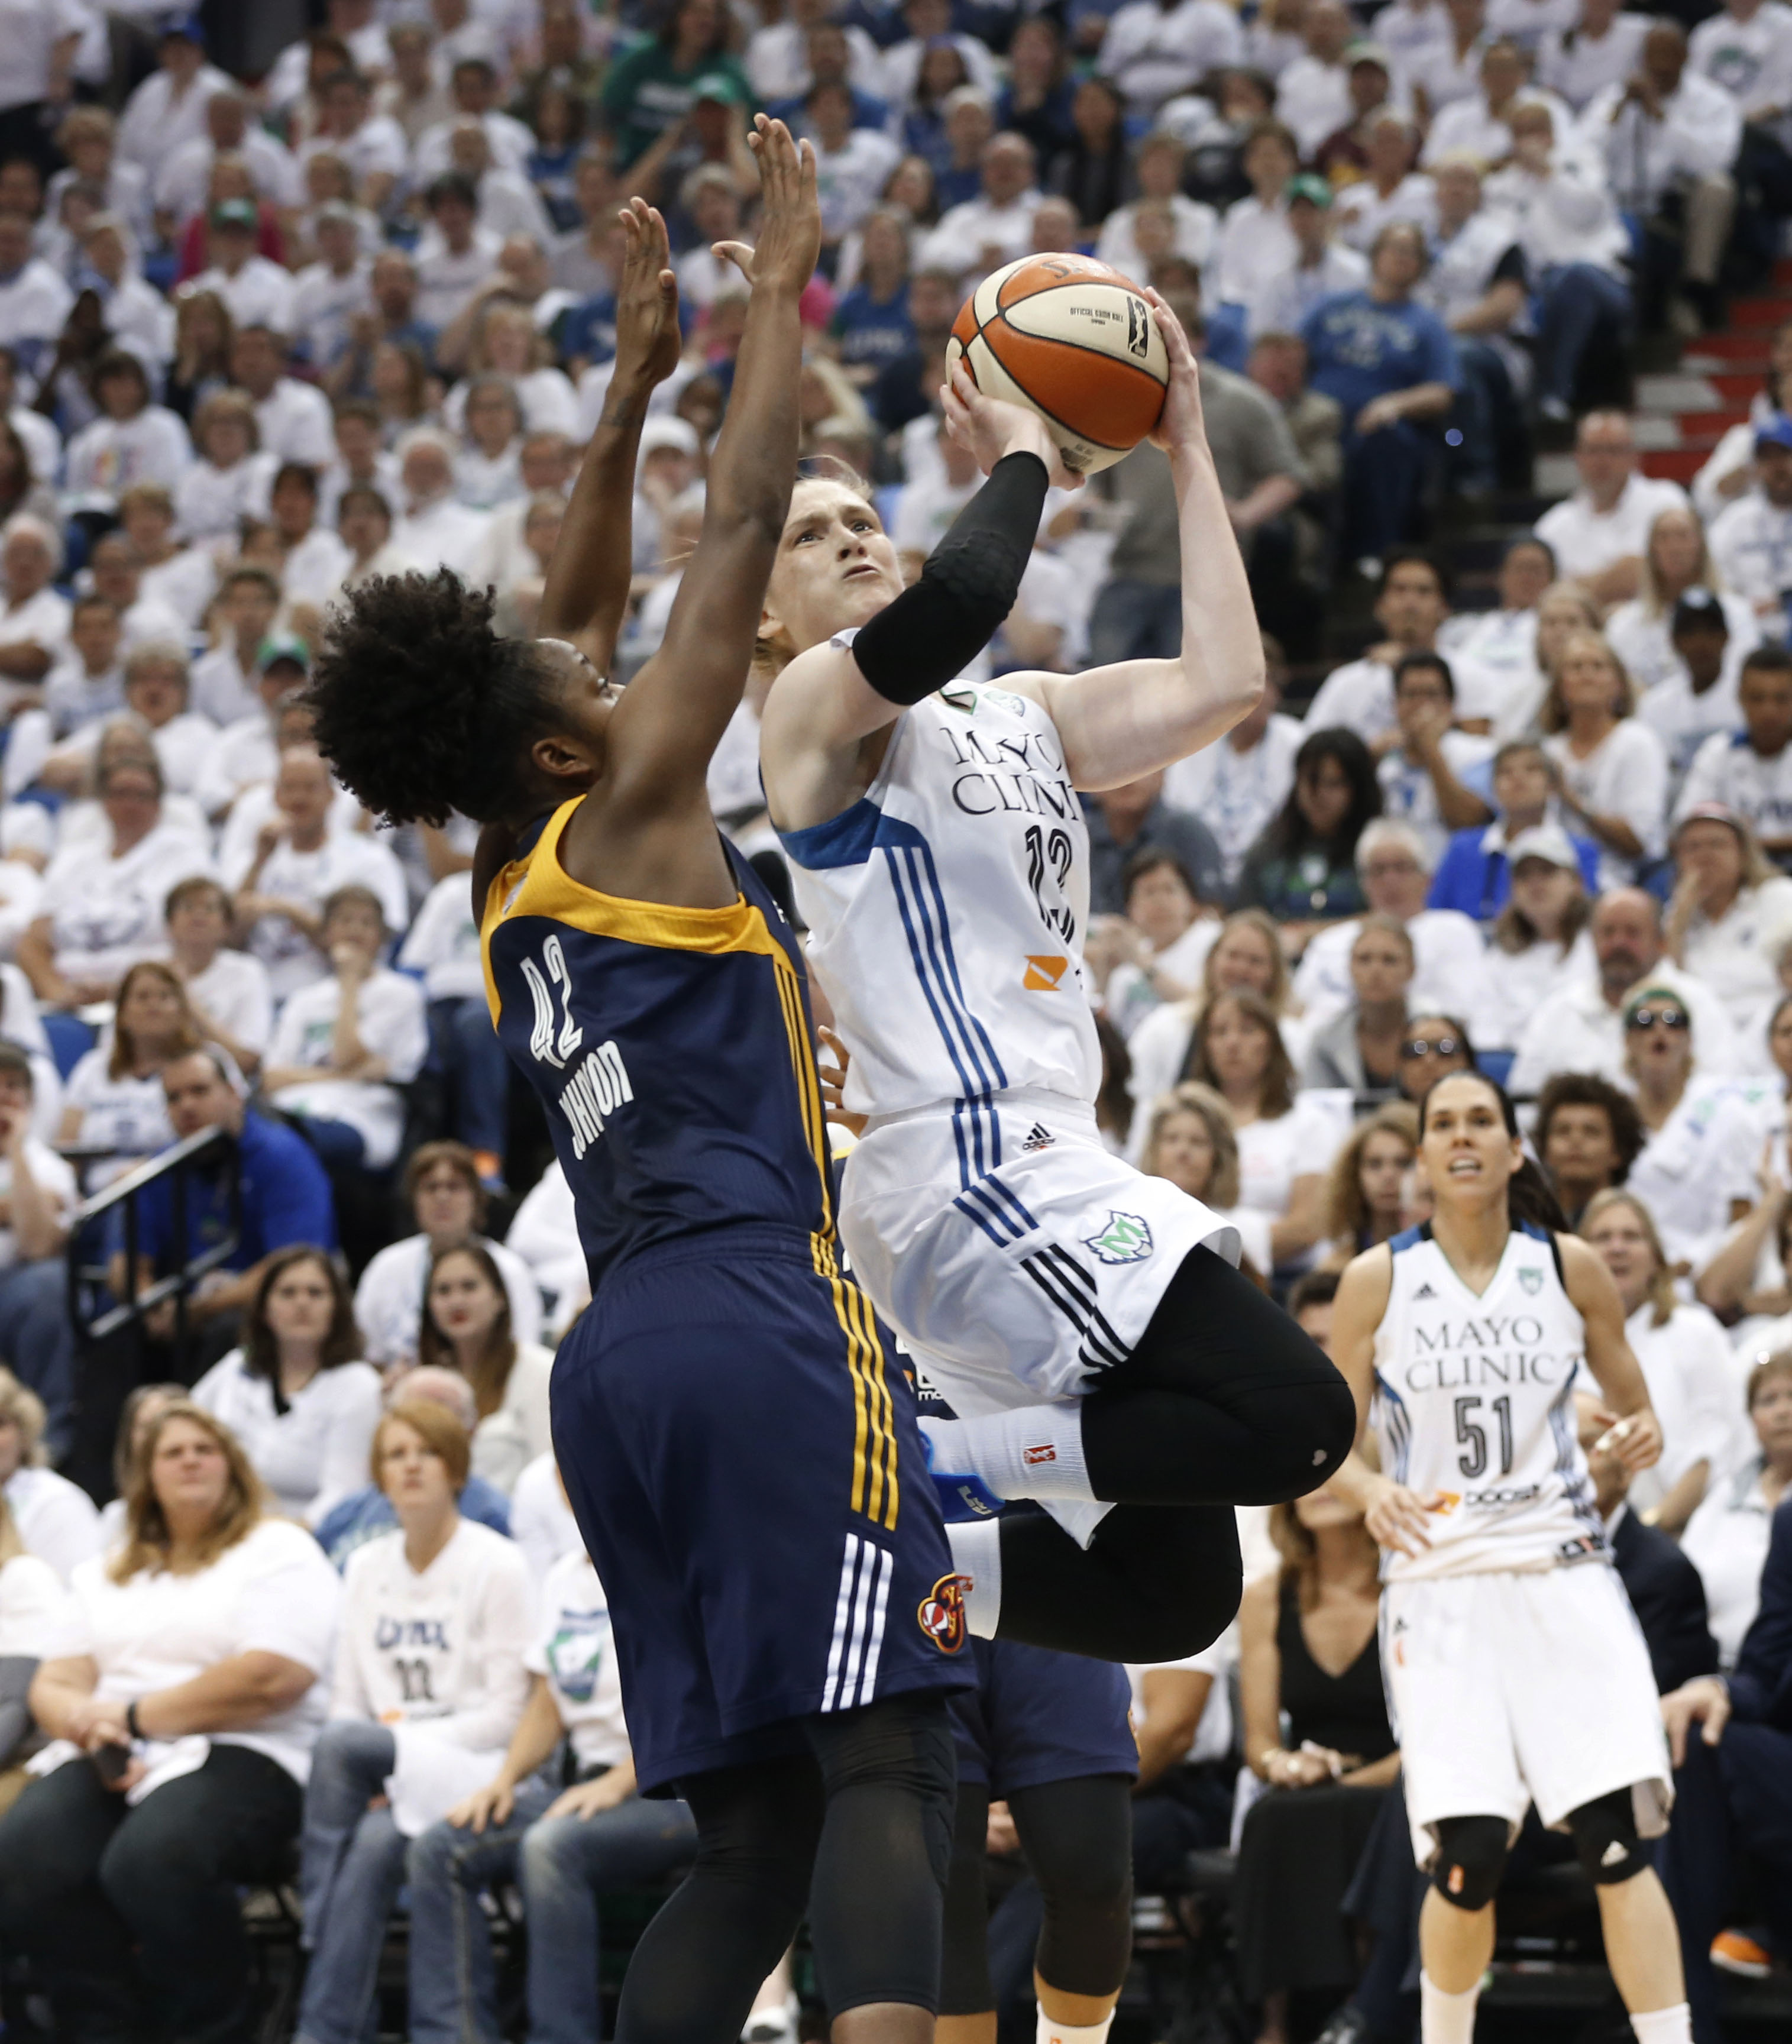 Minnesota Lynx guard Lindsay Whalen (13) drives on Indiana Fever guard Shenise Johnson (42) in the first half of Game 5 of the WNBA basketball finals, Wednesday, Oct. 14, 2015, in Minneapolis. (AP Photo/Jim Mone)